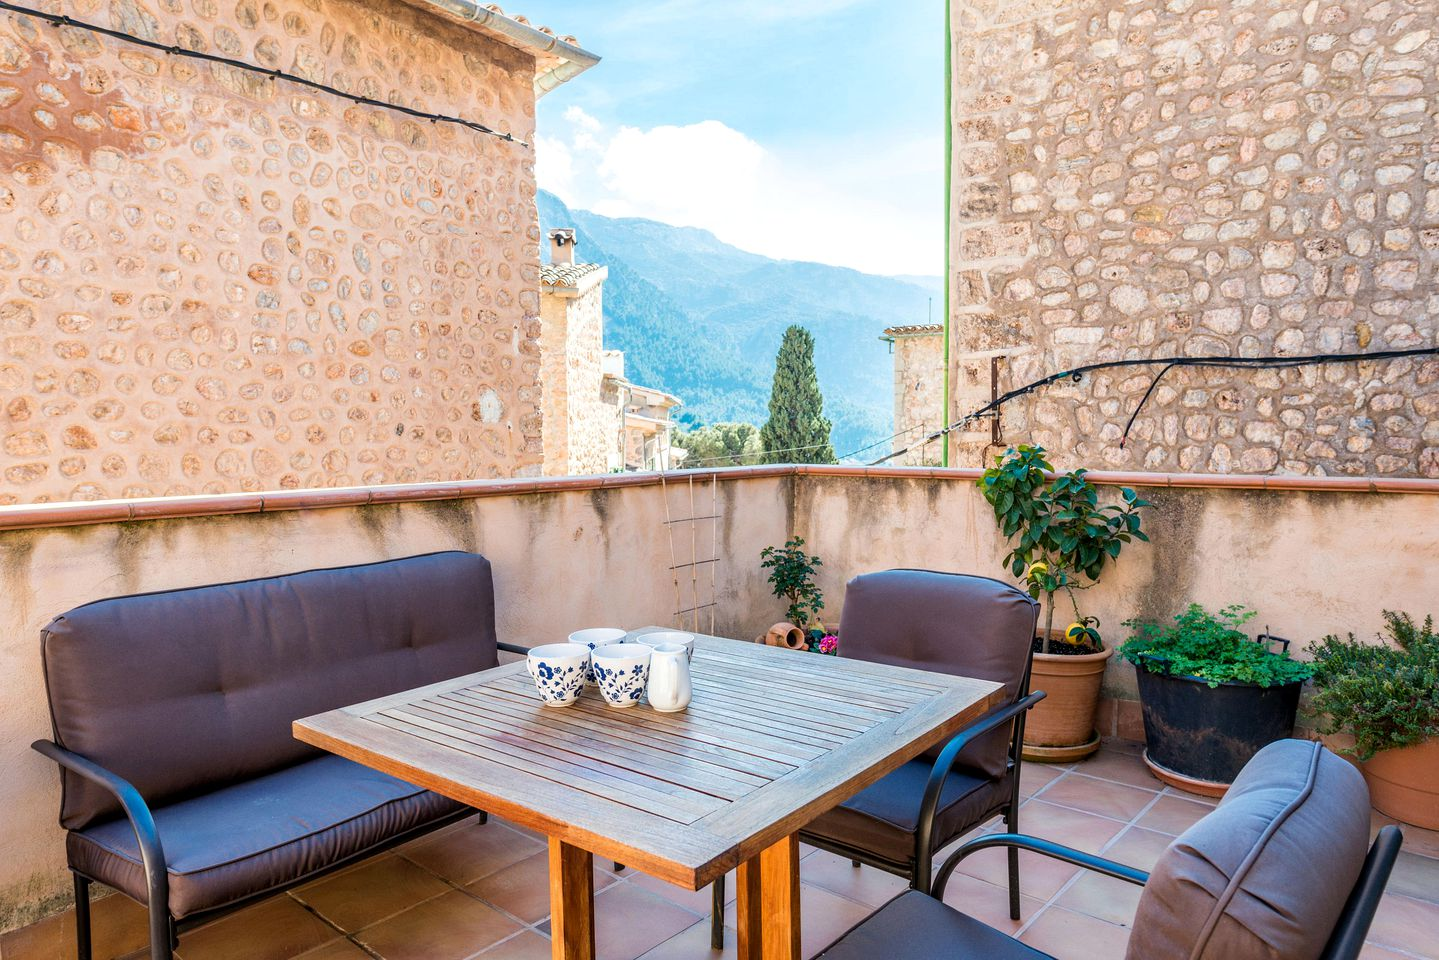 Enjoy a holiday in Spain at this Mallorca villa rental!